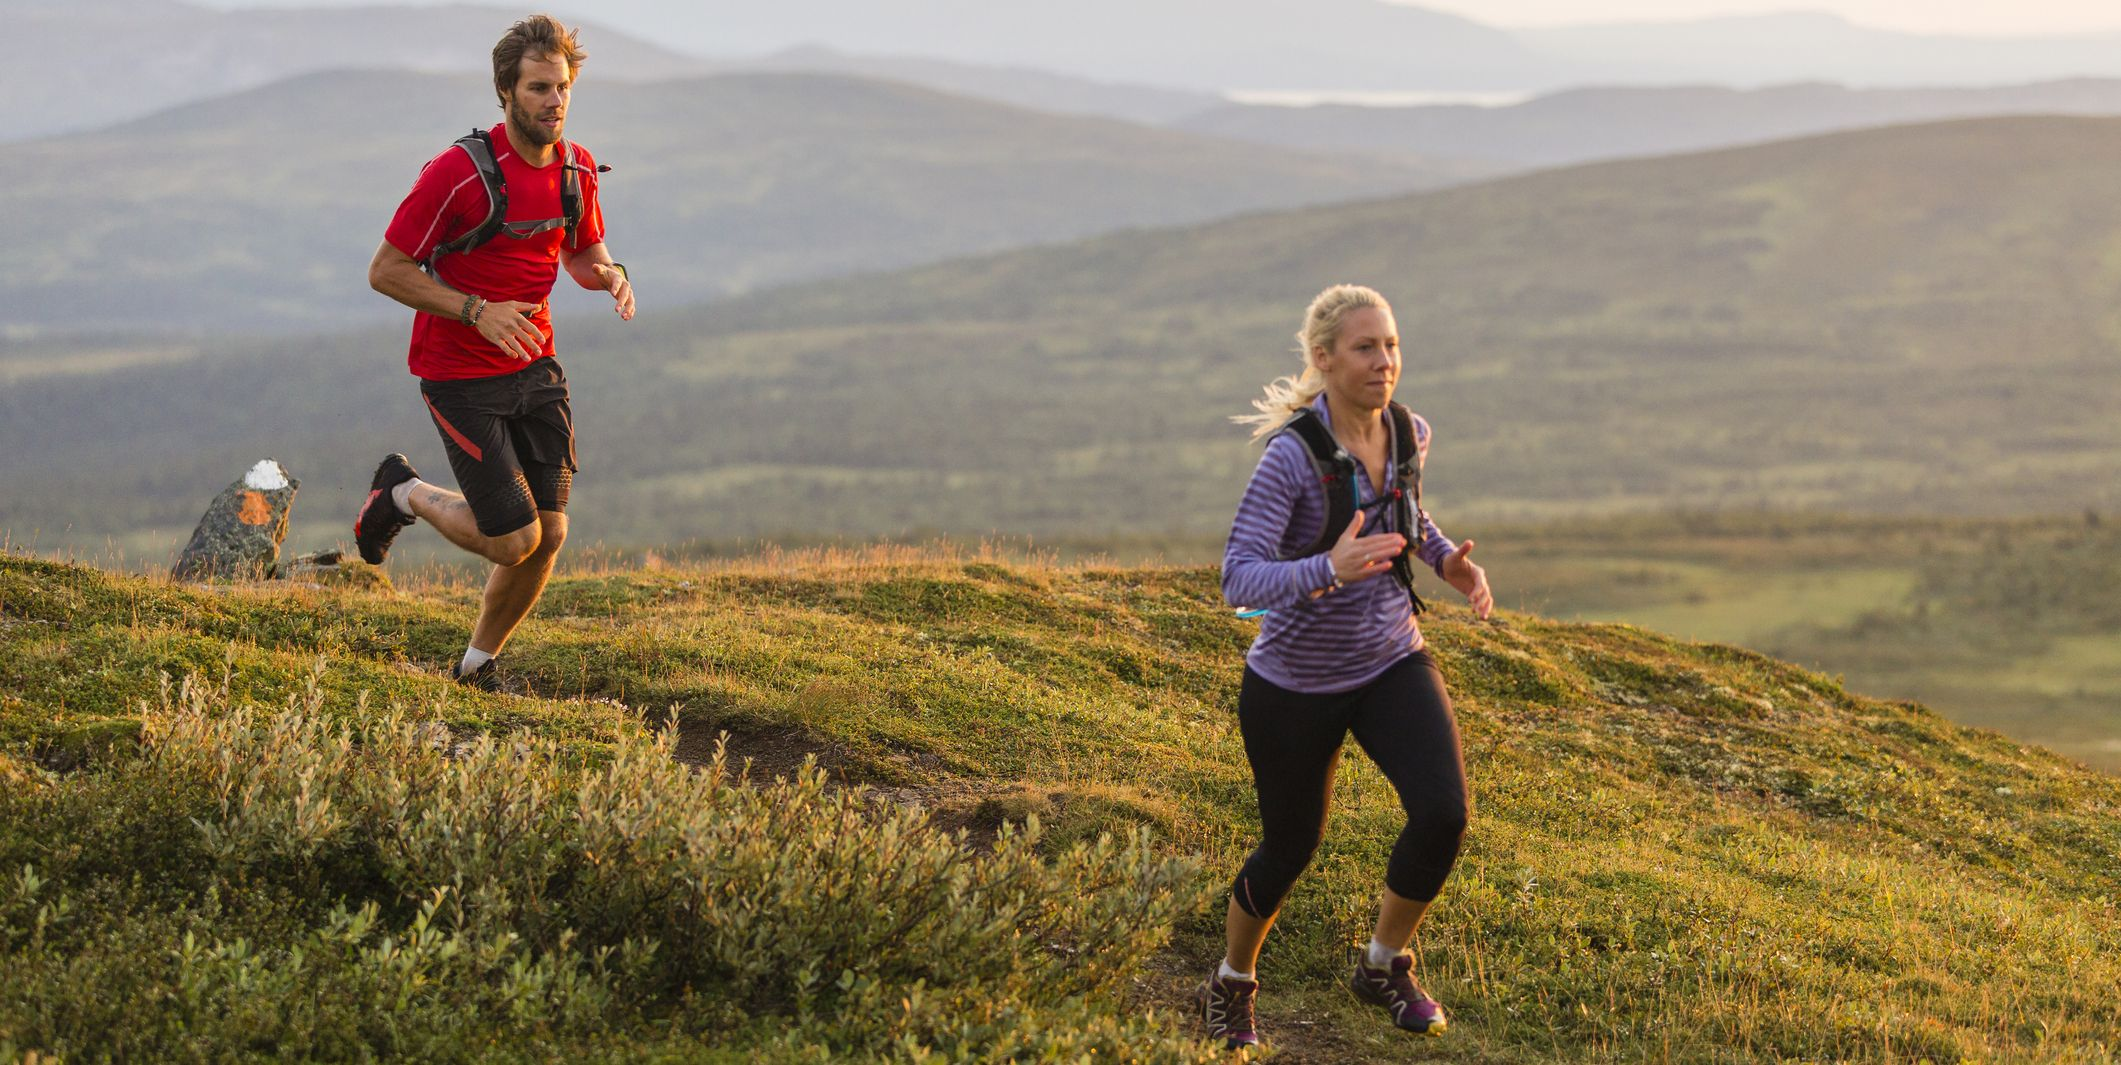 Couple jogging in mountains